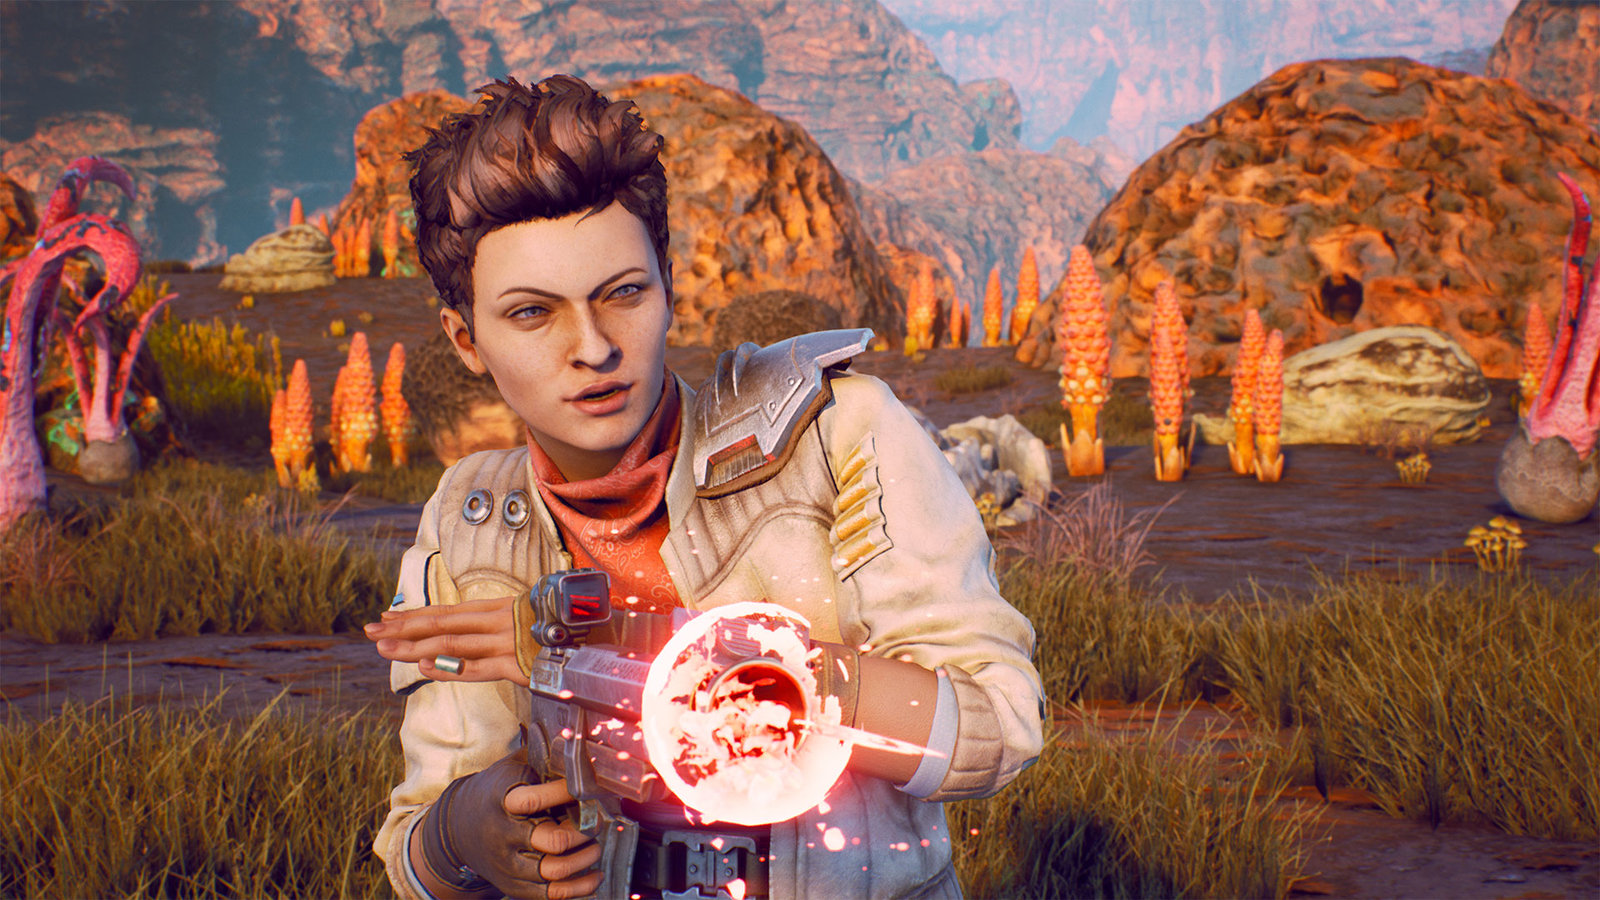 The Outer Worlds image 1